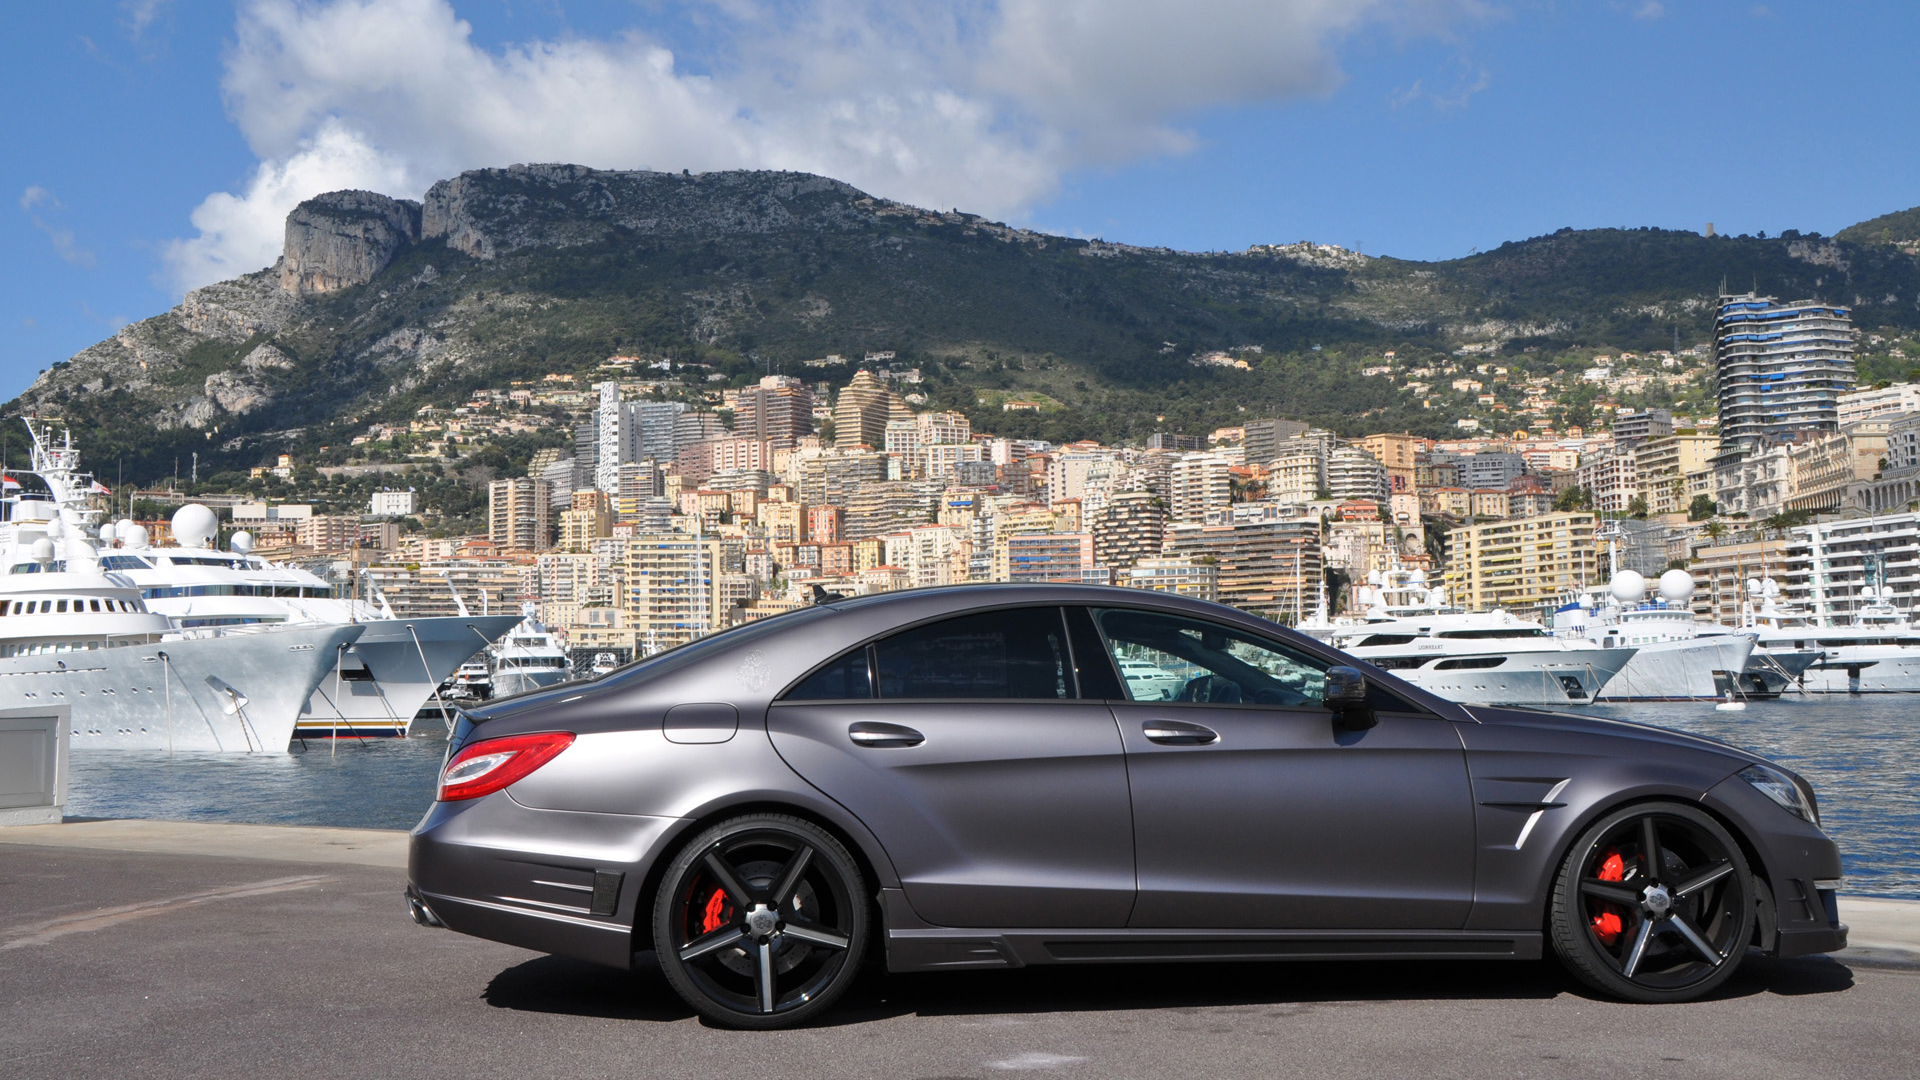 Mercedes Amg Wallpaper Hd: Mercedes Cls Amg Modification Hd Wallpaper 1920x1080px